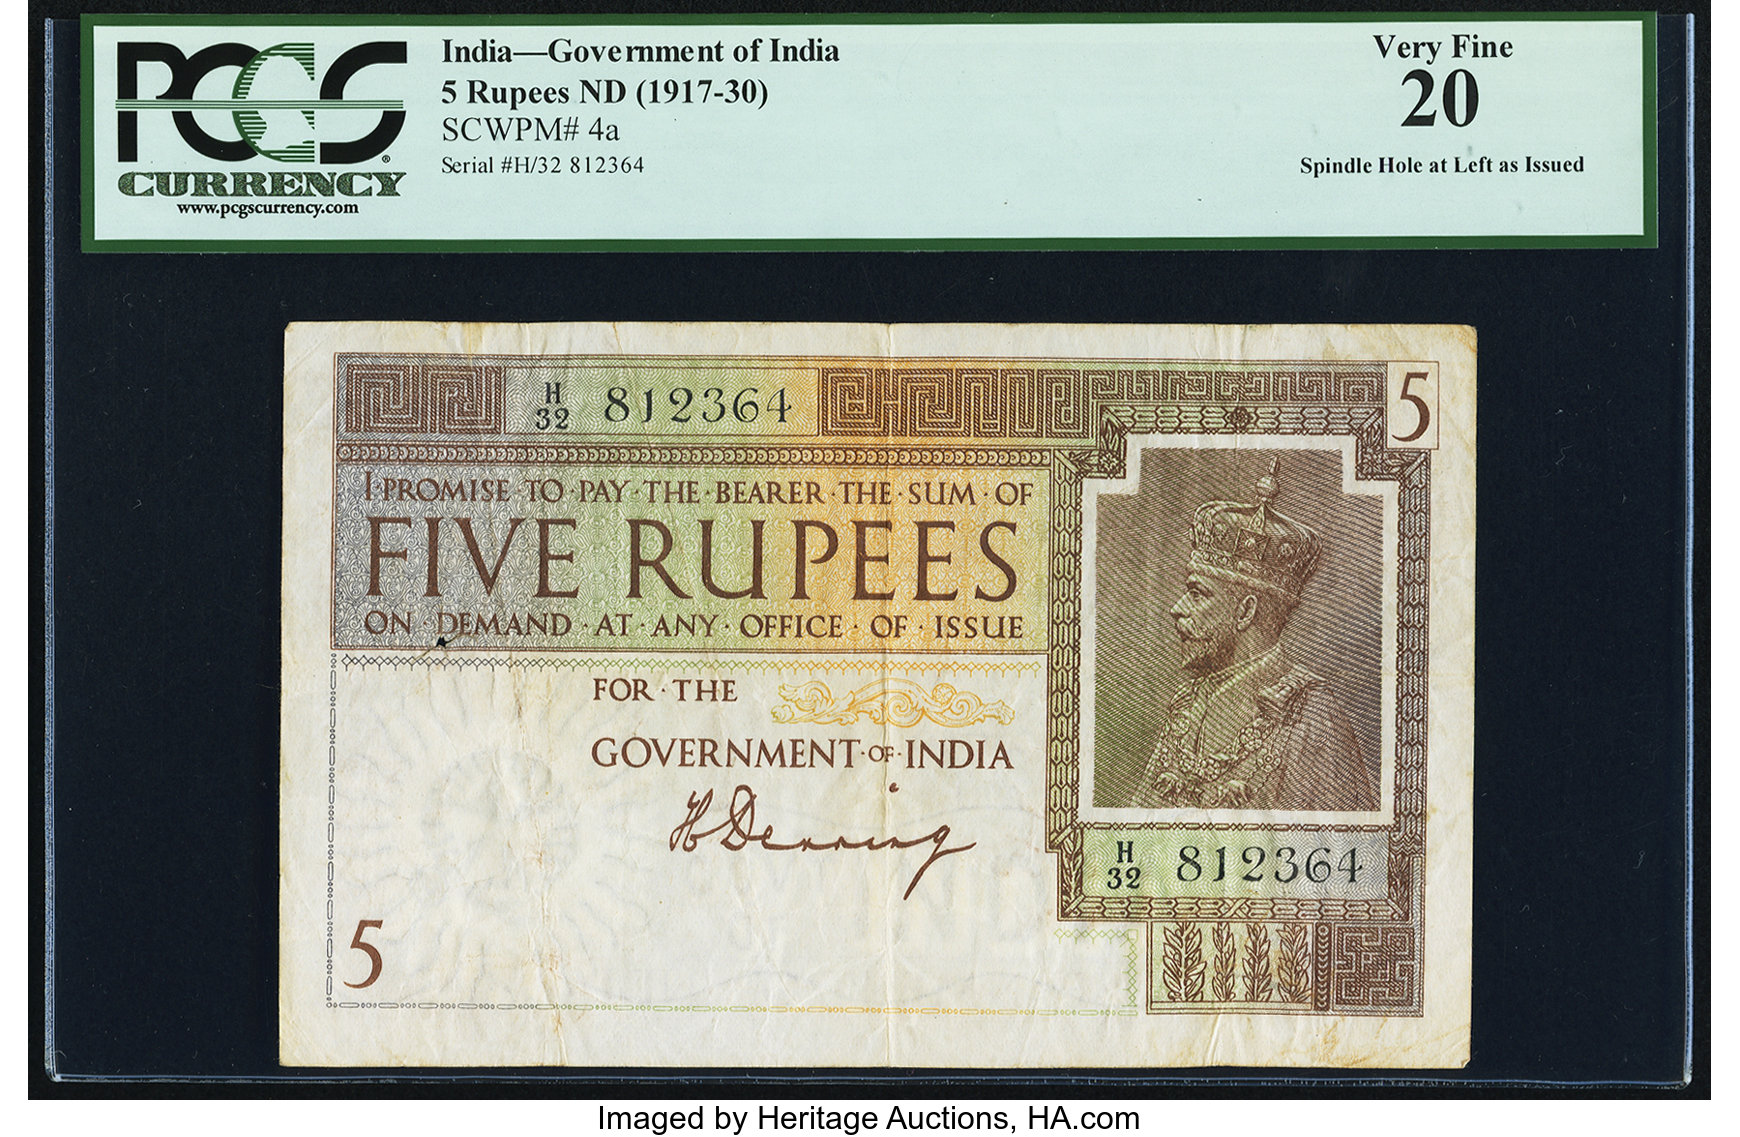 India Government of India 5 Rupees ND (1917-30) Pick 4a PCGS